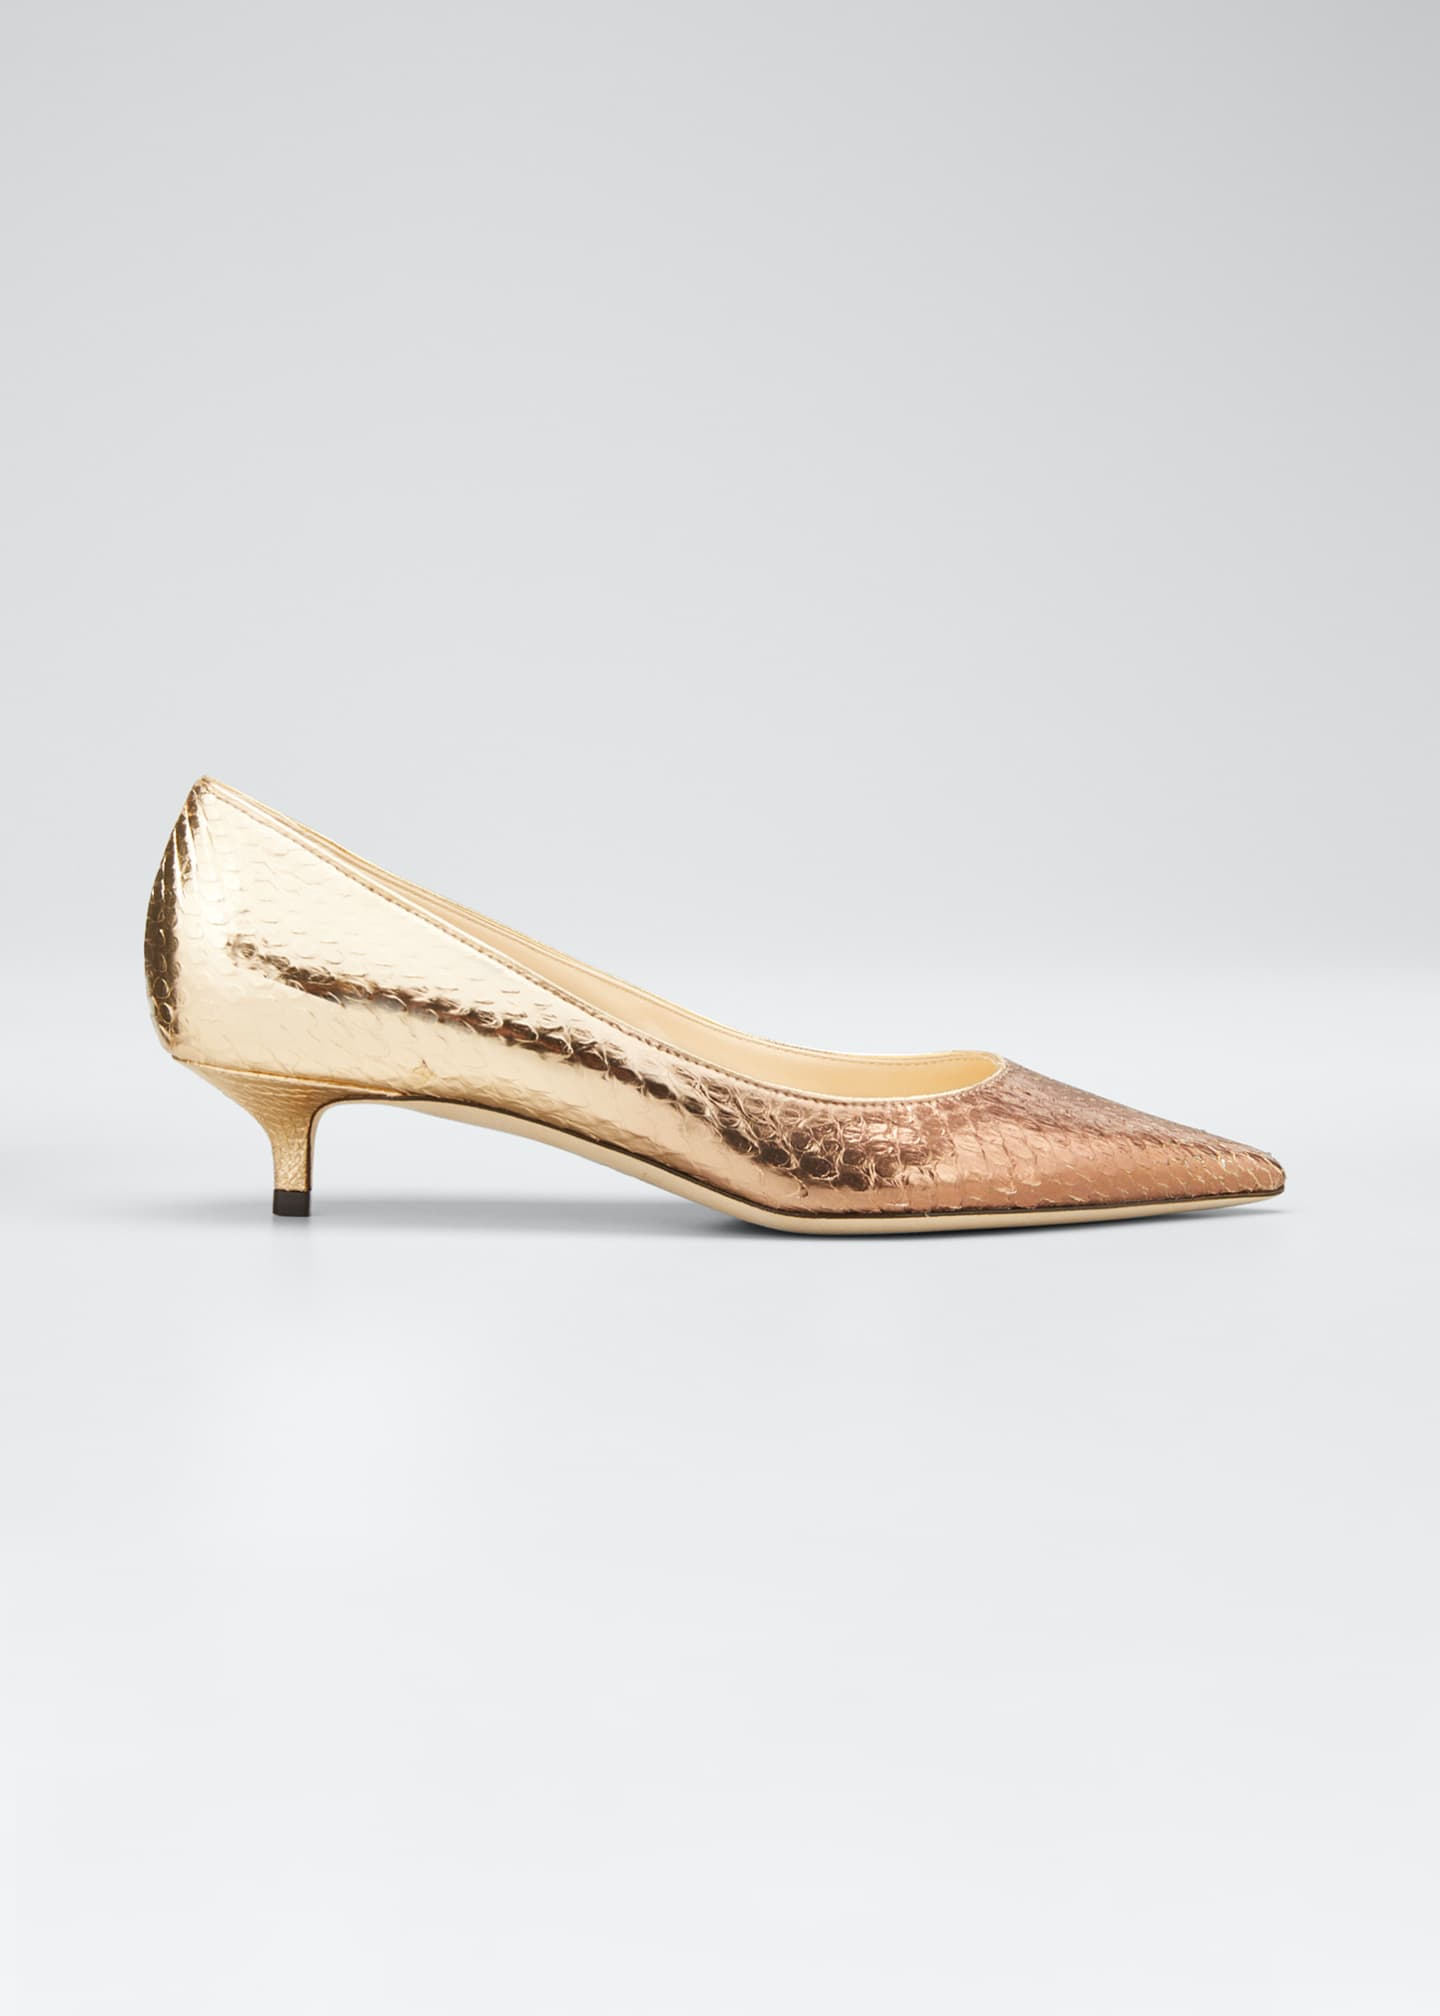 Jimmy Choo Amelia Snake-Printed Metallic Pumps